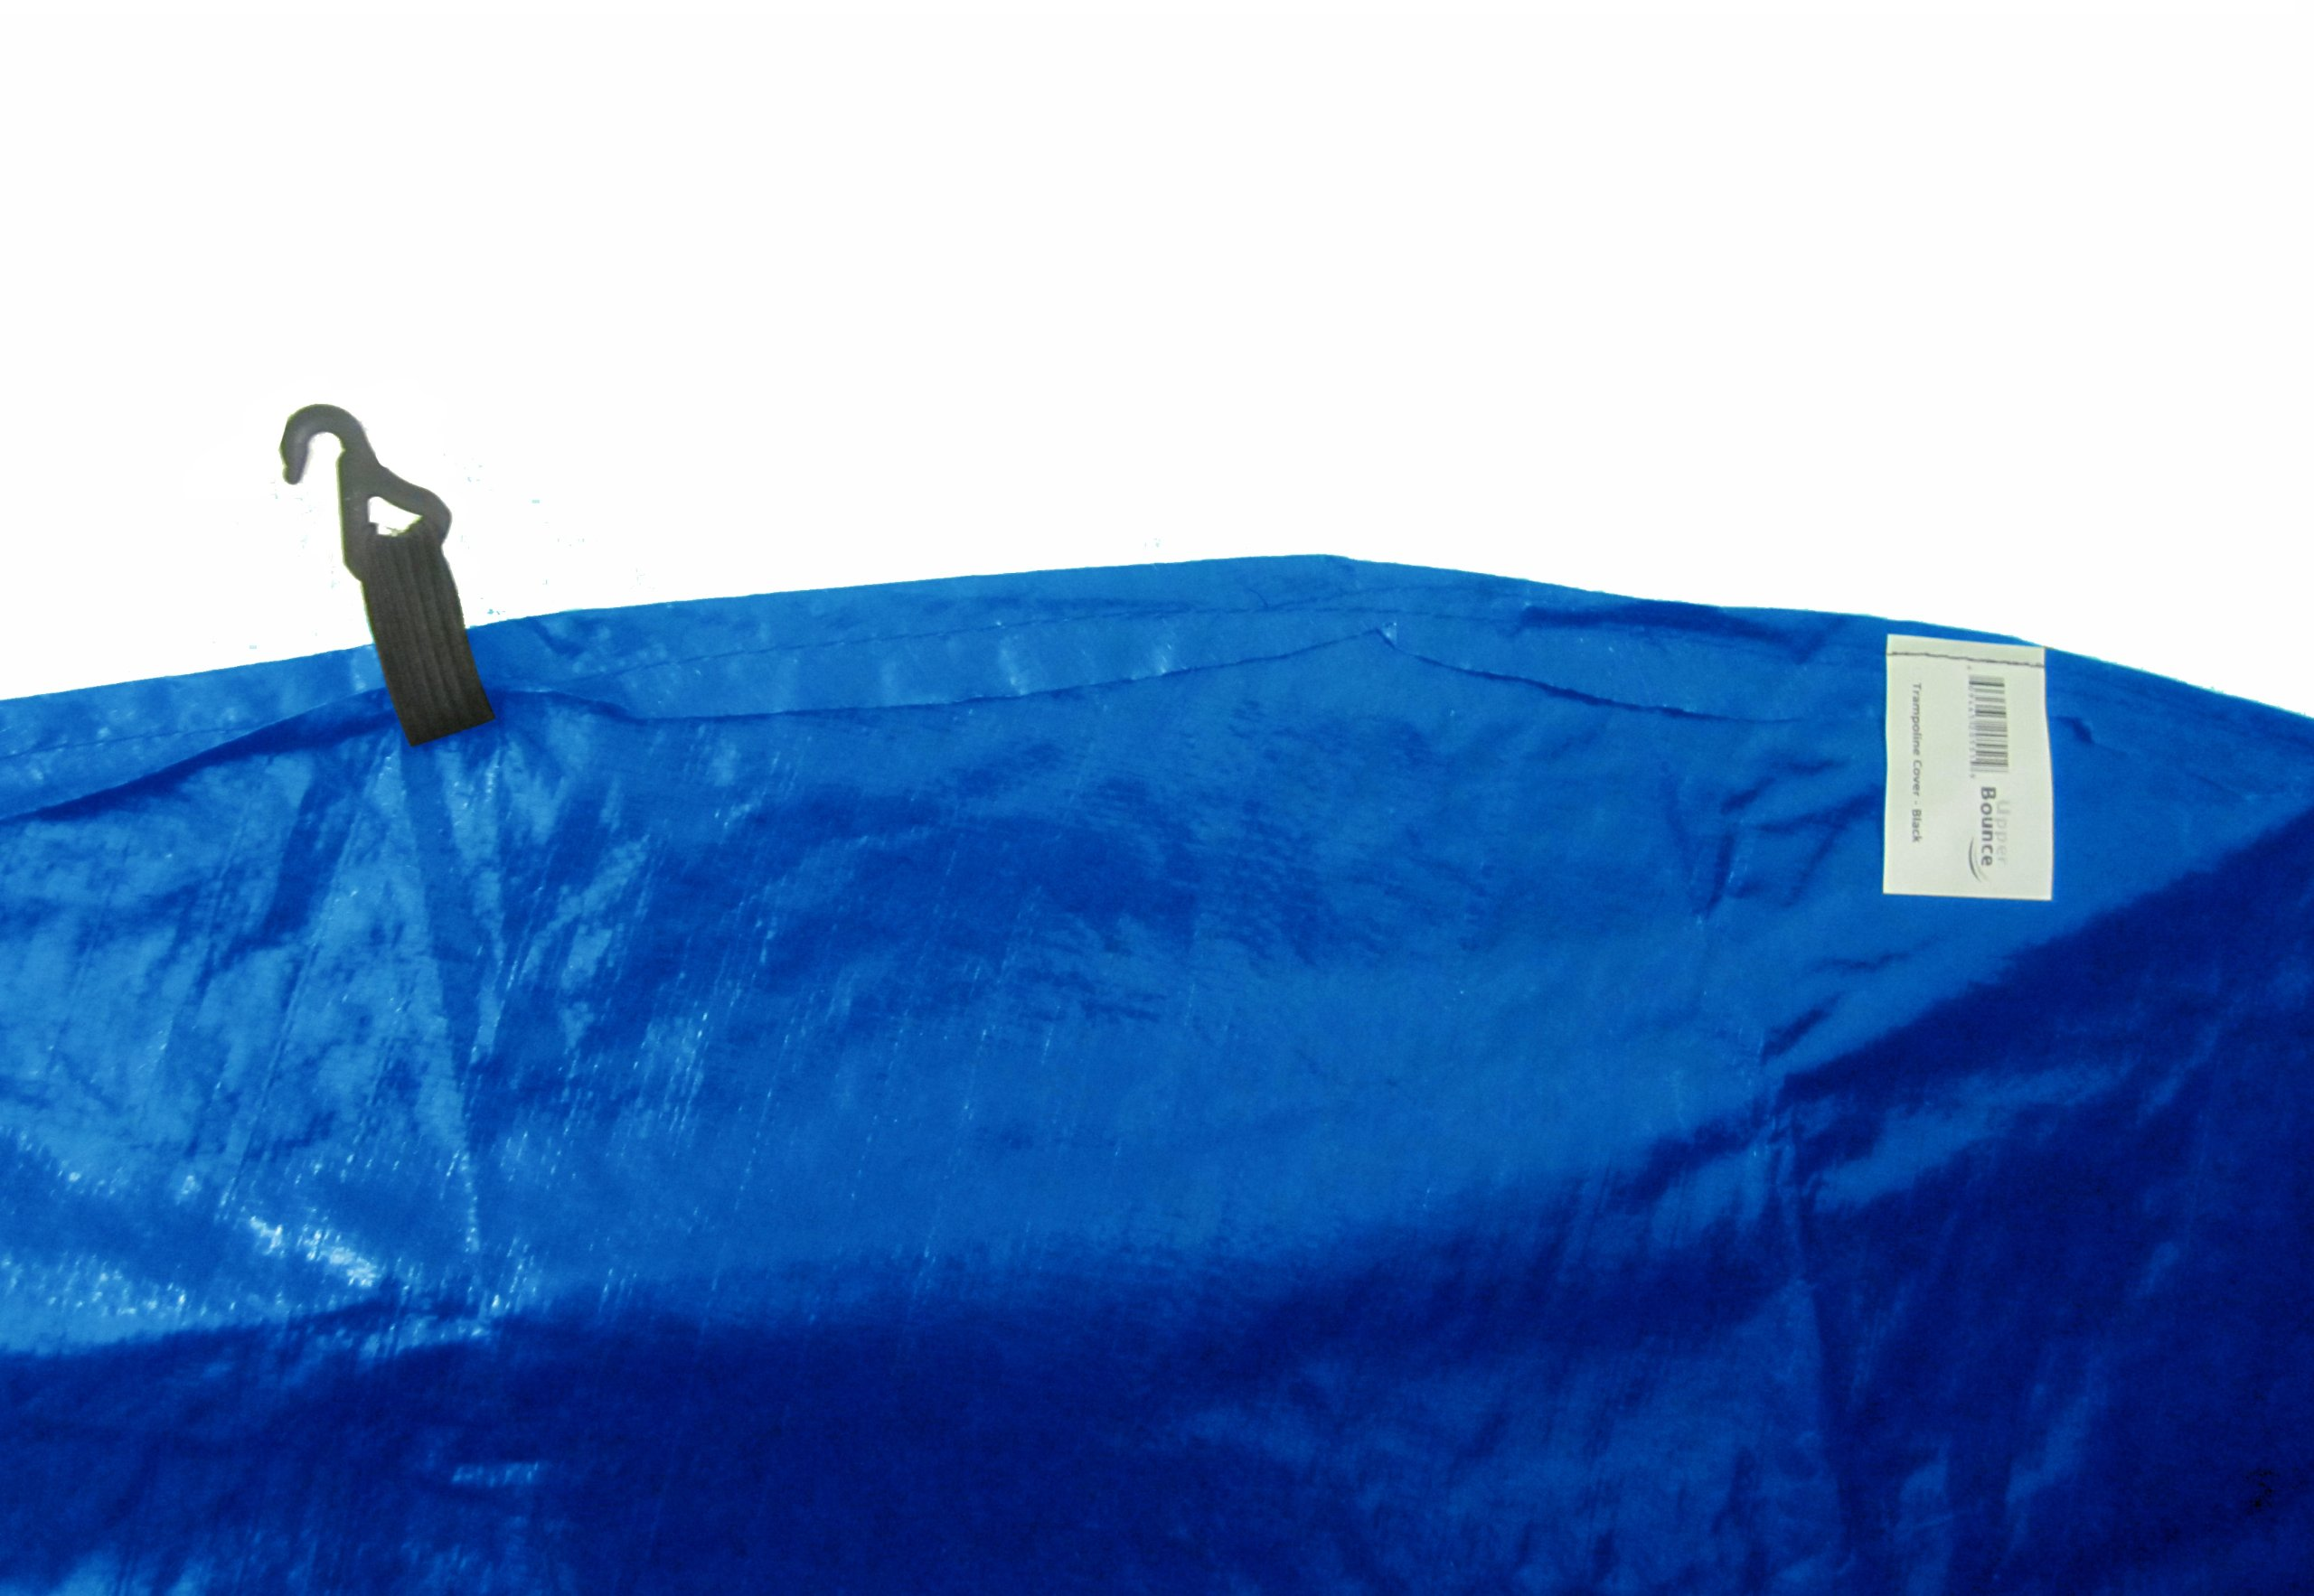 Upper Bounce Economy Trampoline Weather Protection Cover, Fits for Sports Power Model # TR-1463A-enc - Blue by Upper Bounce (Image #2)